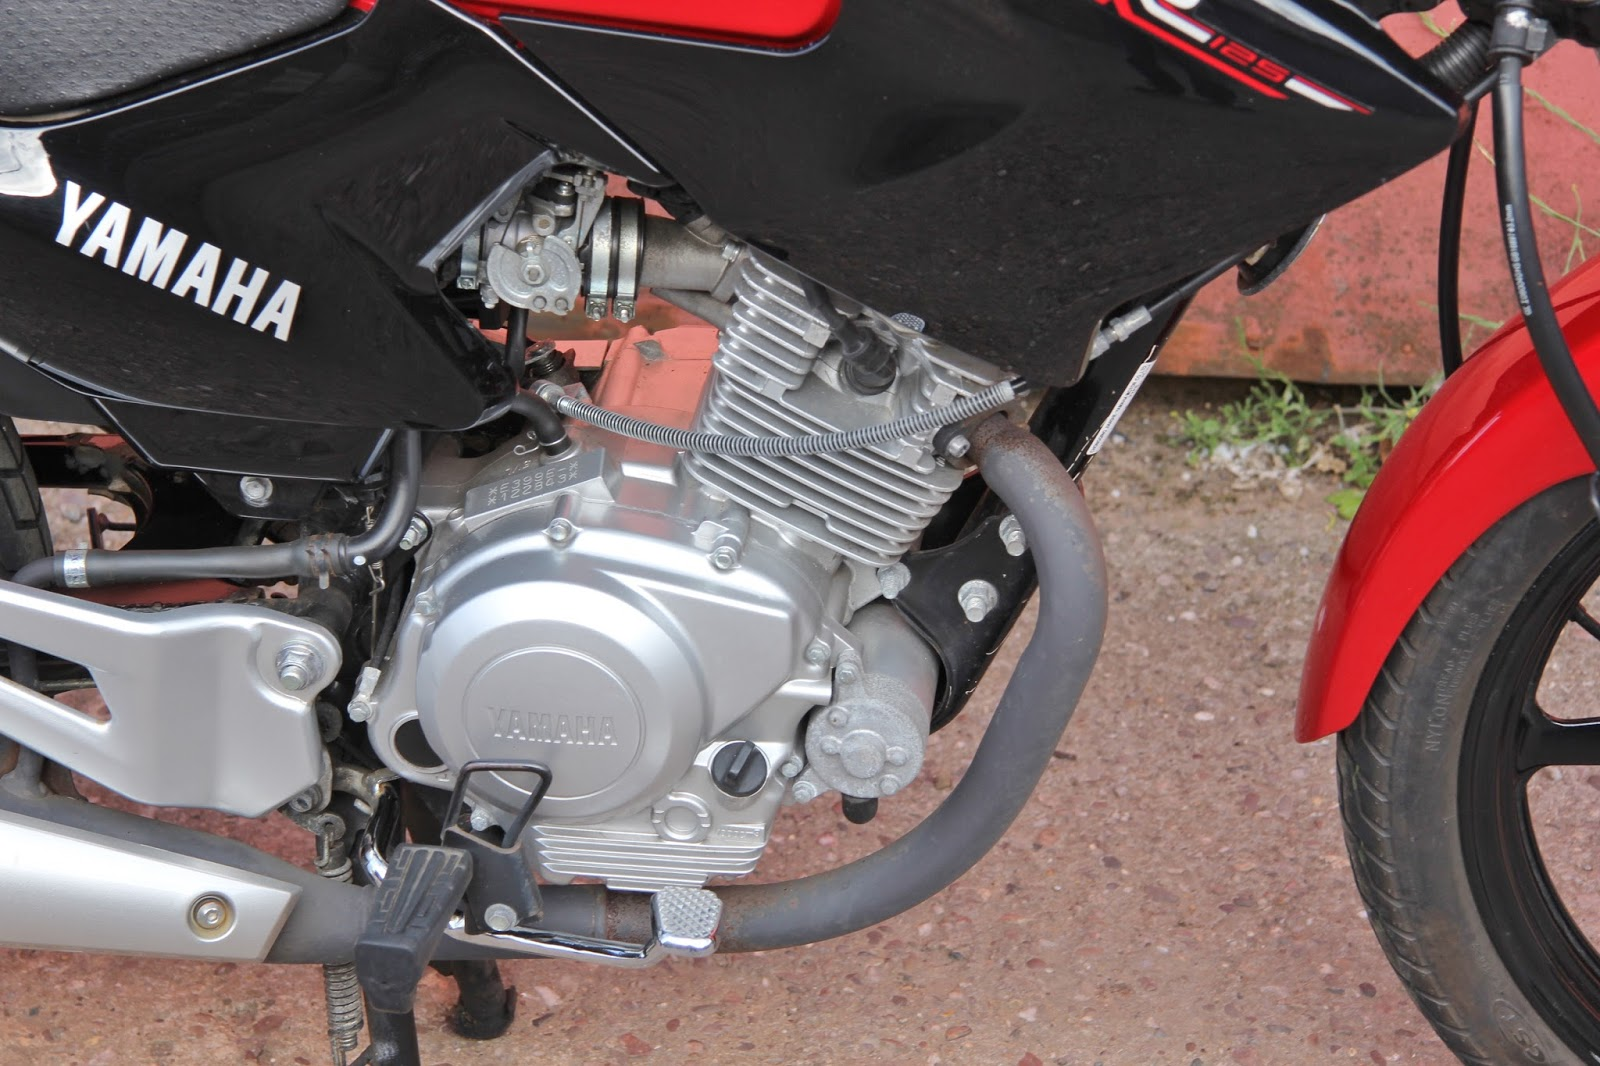 Yamaha YBR 125 Owner Blog